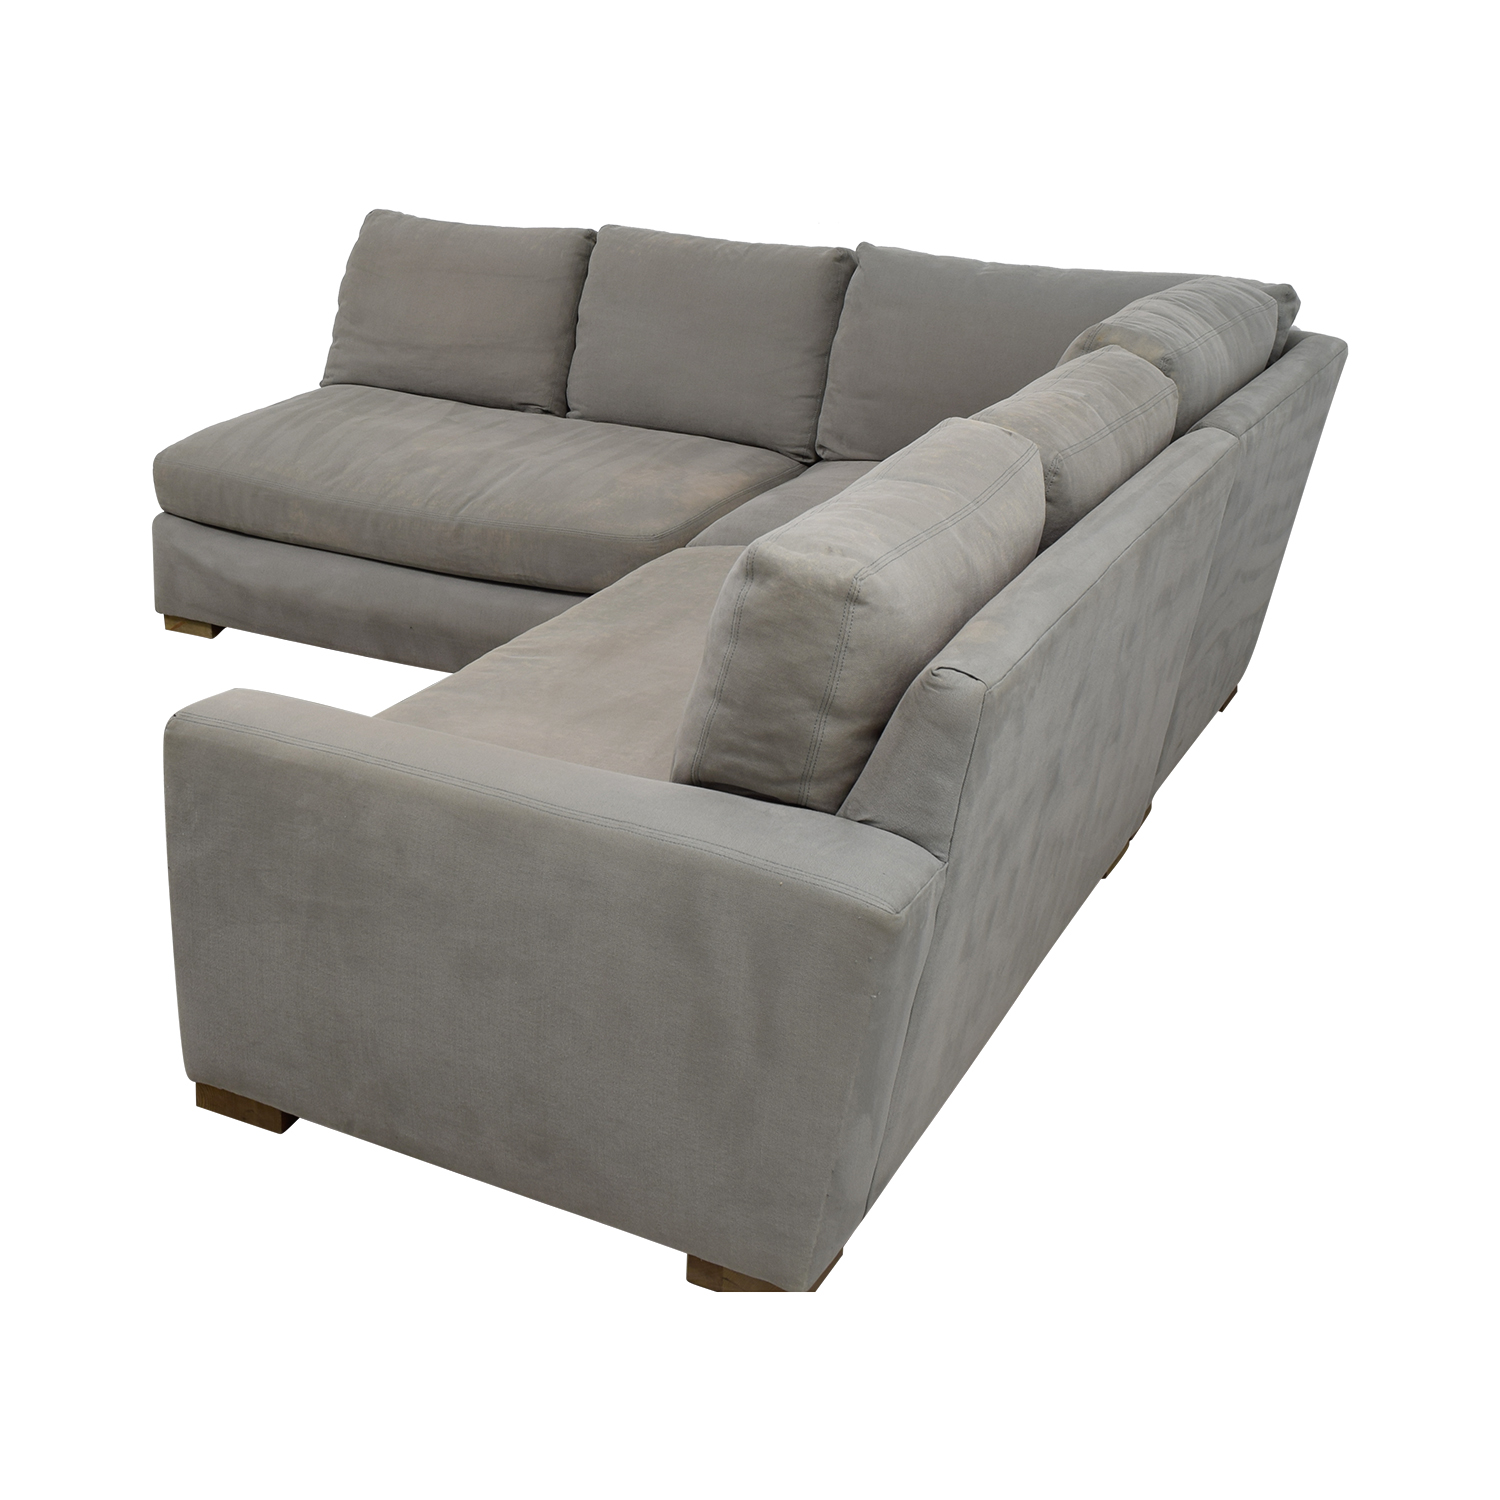 grey large l shaped sofa jual bed di bandung groe couch great small you might also like